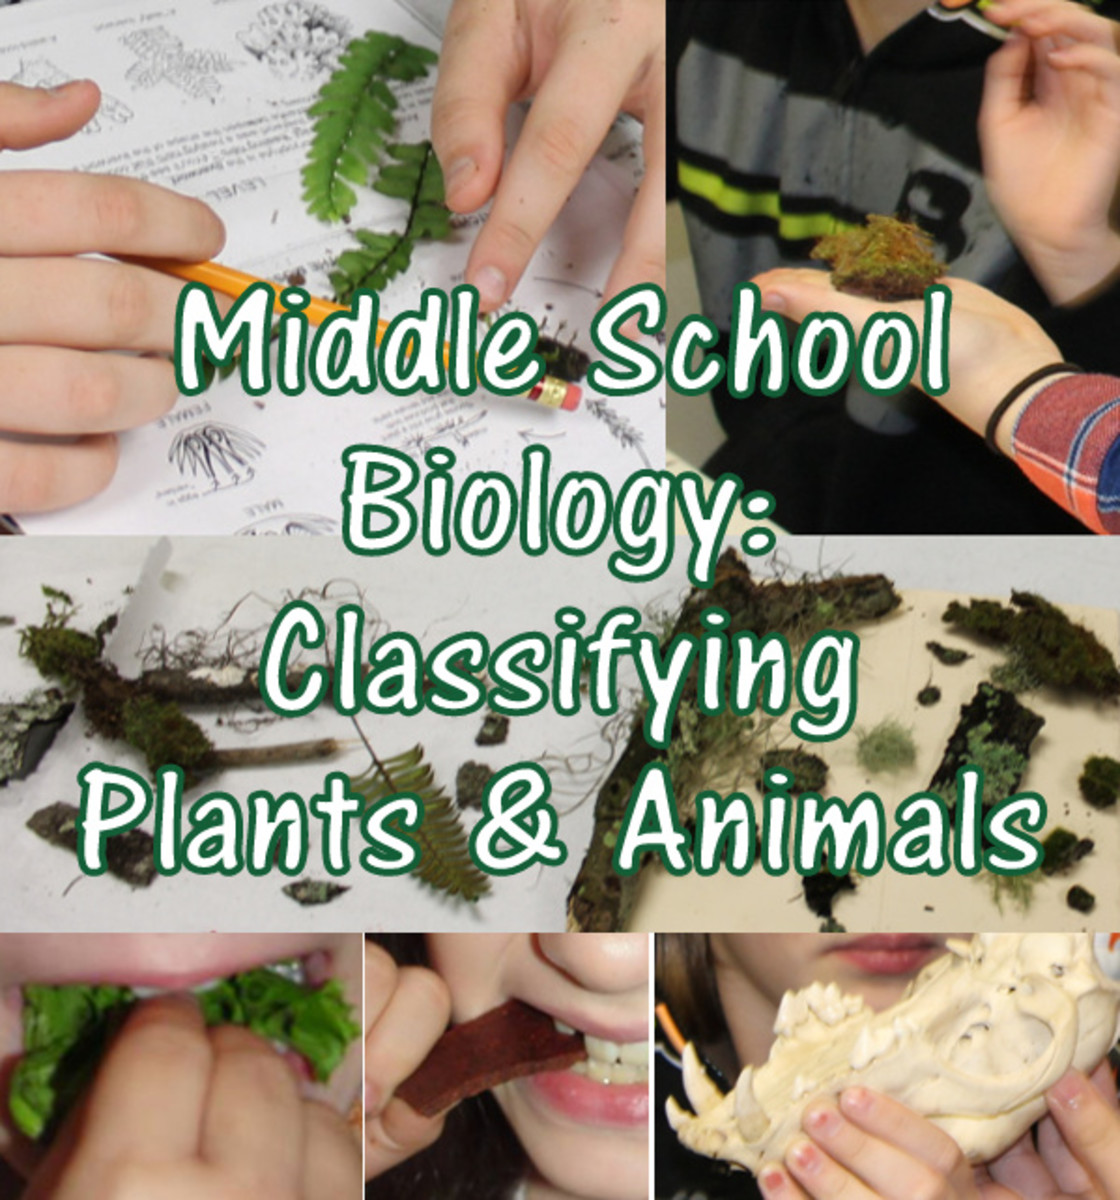 Classifying Plants & Animals: A Christian Middle School Biology Lesson